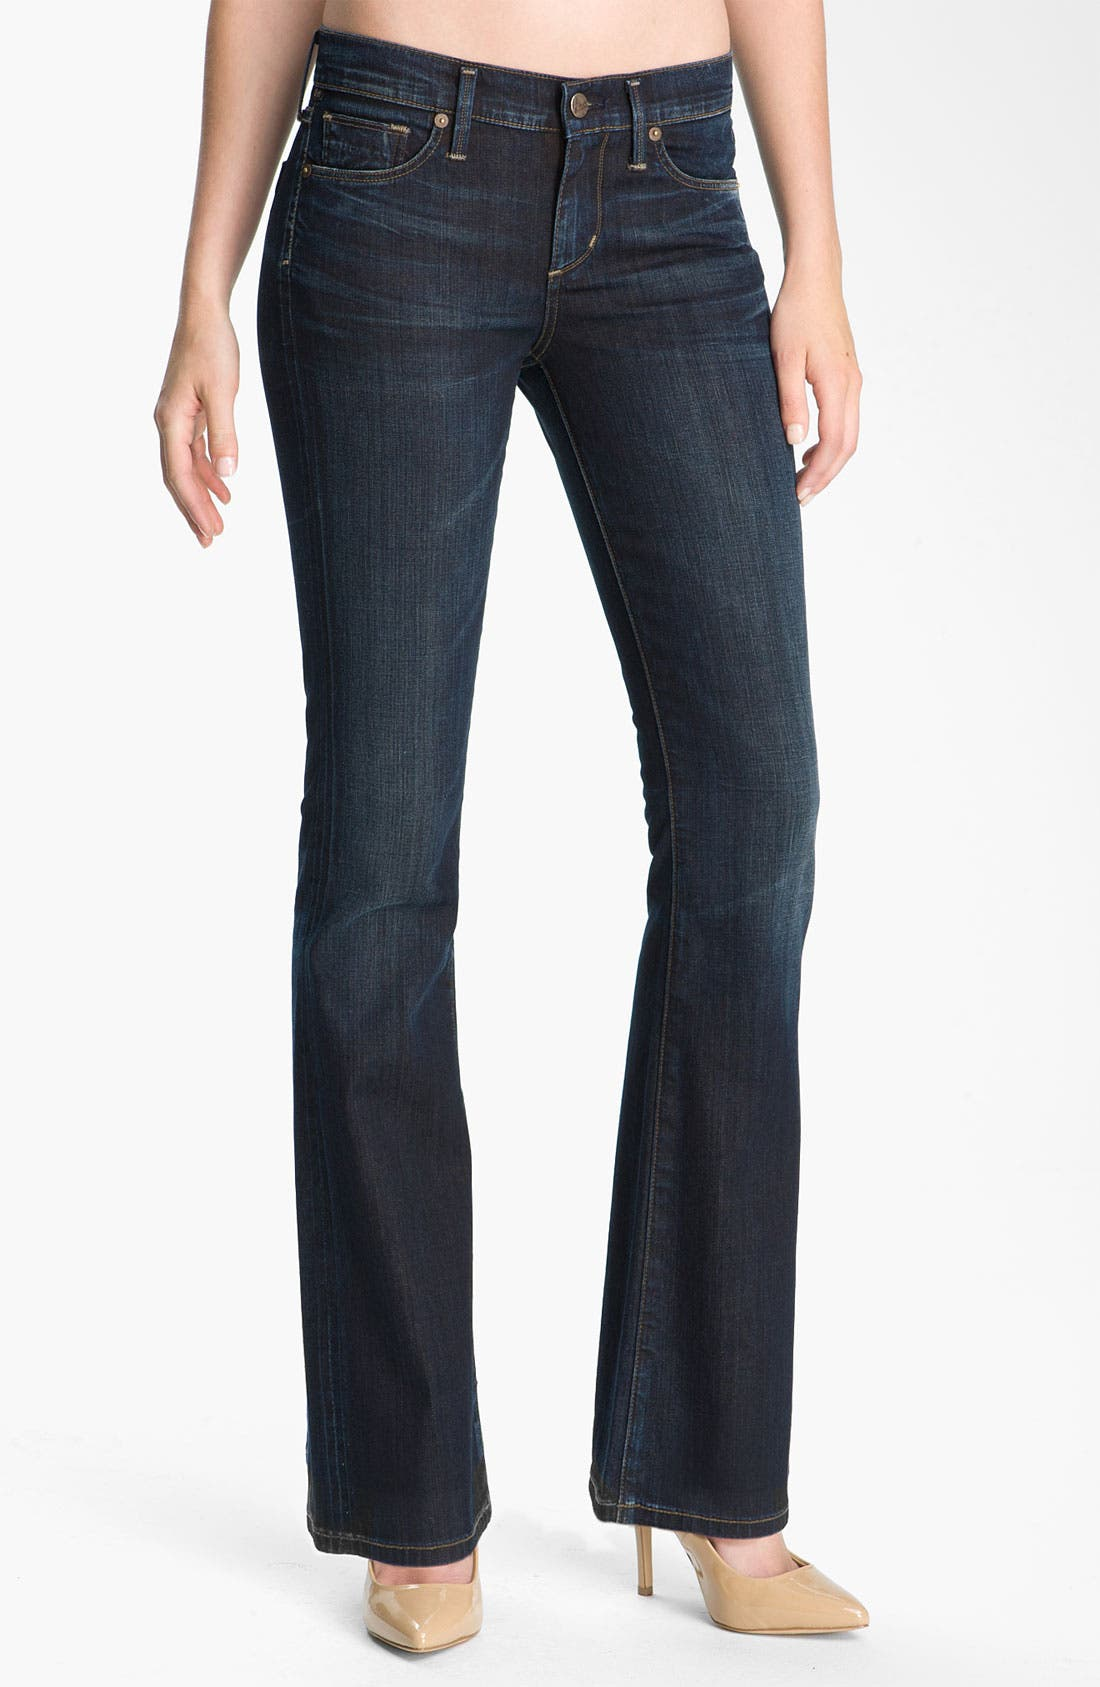 Main Image - Citizens of Humanity 'Dita' Bootcut Jeans (Felt Dark Blue) (Petite)